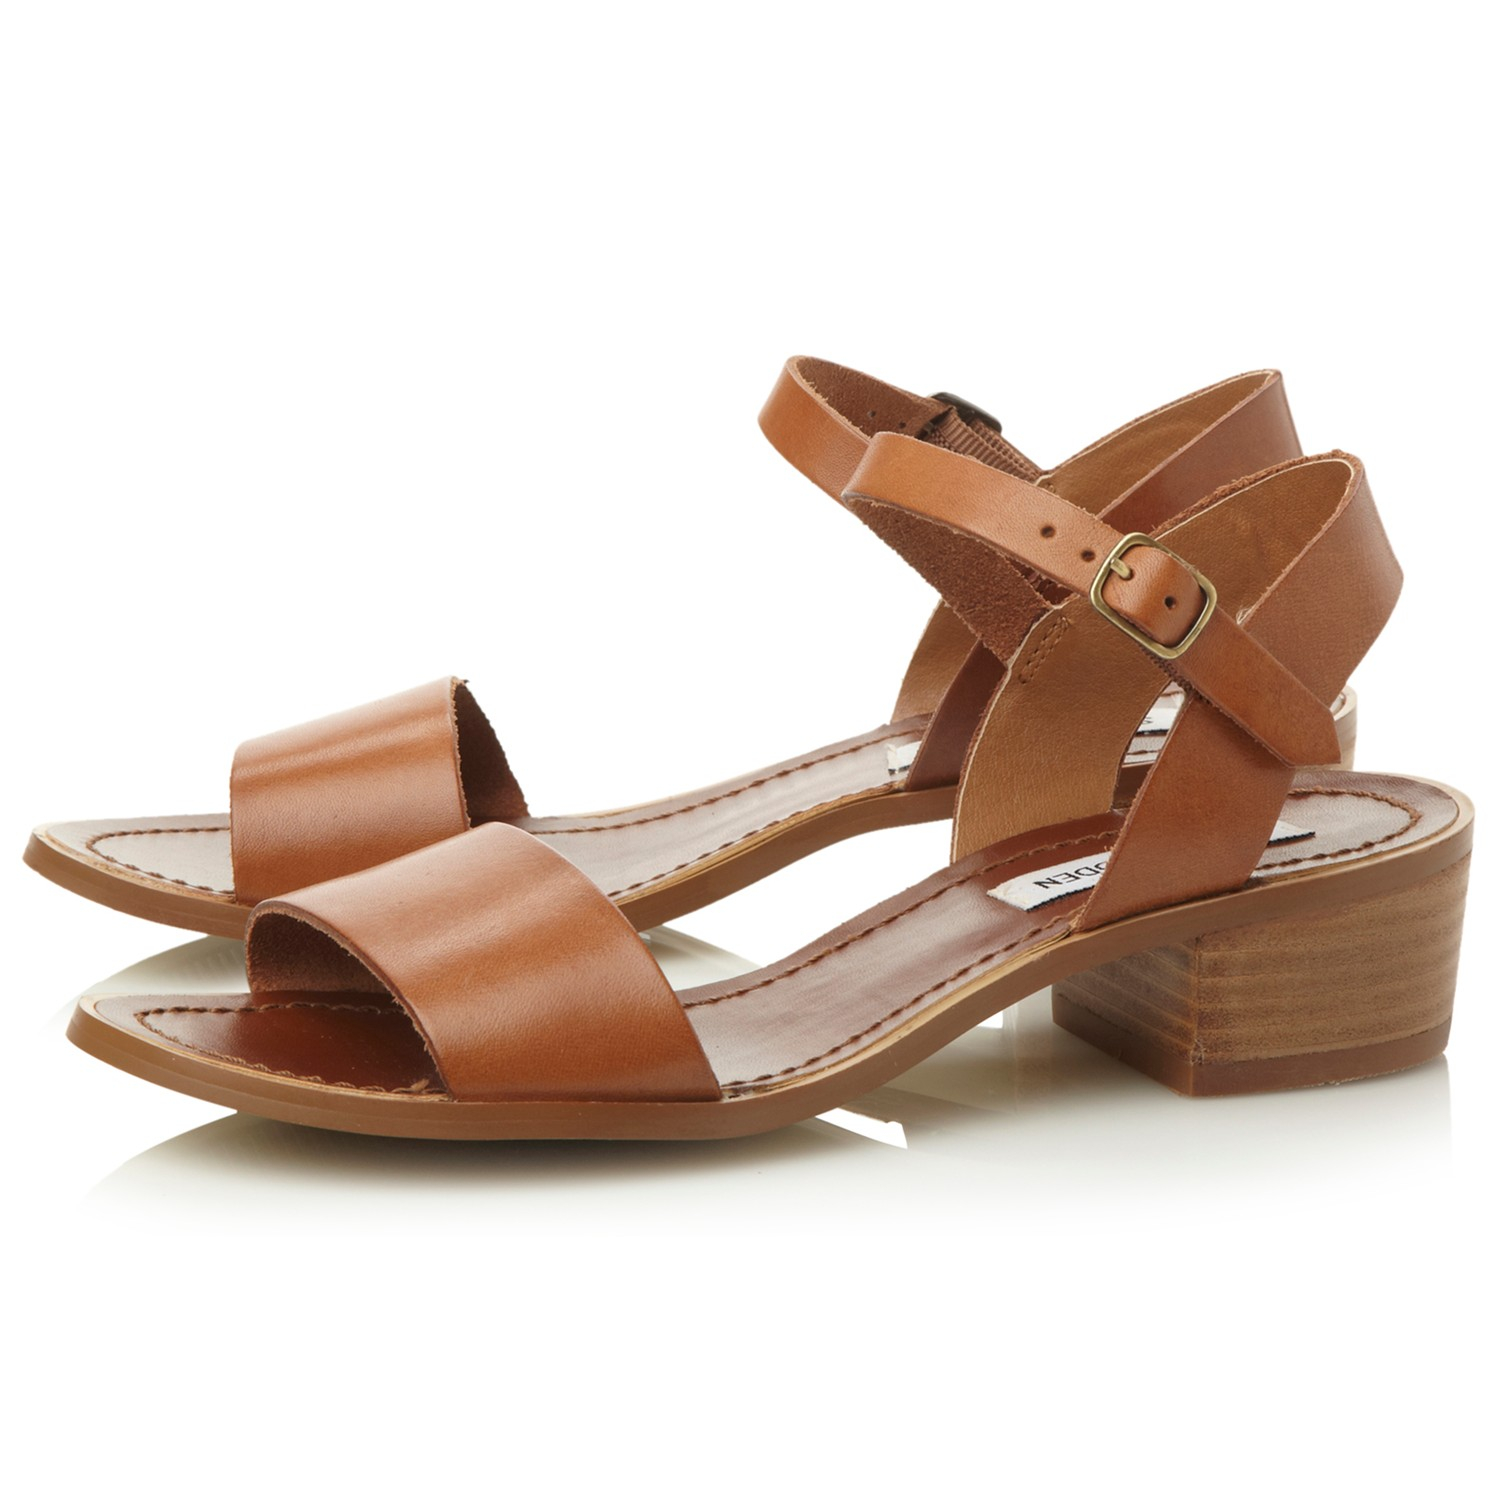 a2e523e88b4 Steve Madden Dense Leather Block Heel Sandals in Brown - Lyst